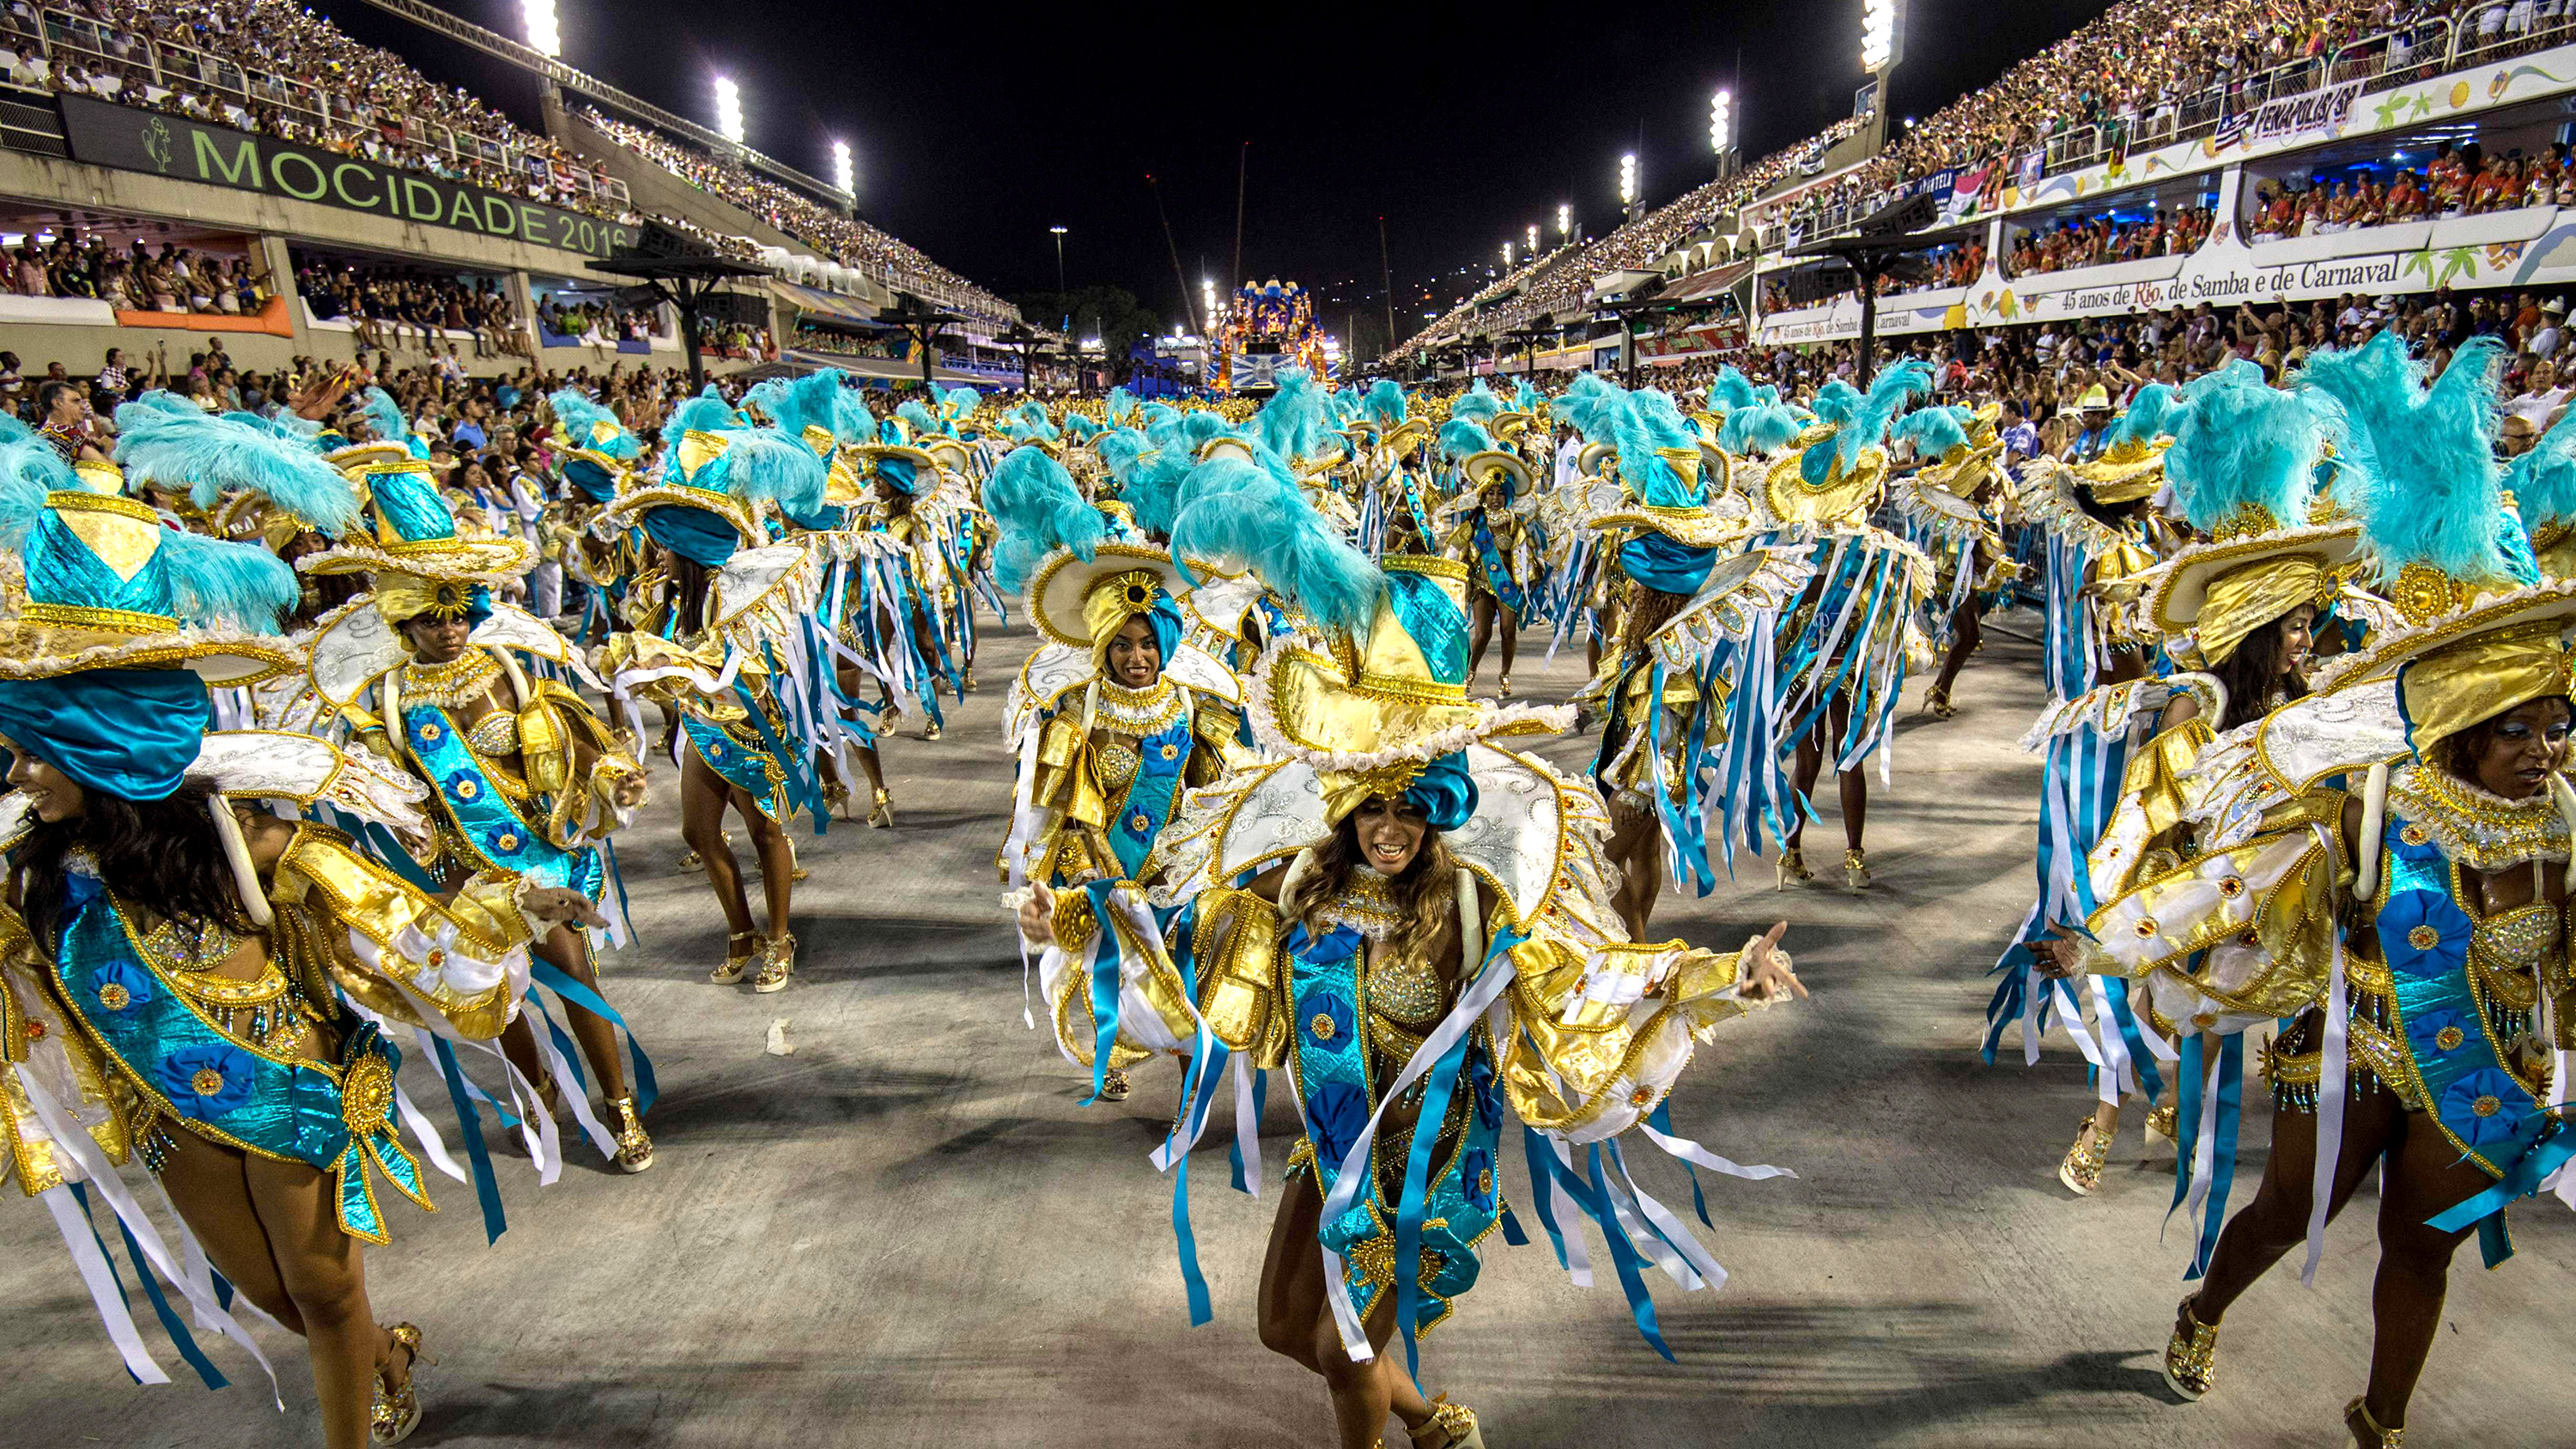 carnival brazilian carnival Brazil carnival is world famous for its pre-lent celebration of life and all that it has to offer.